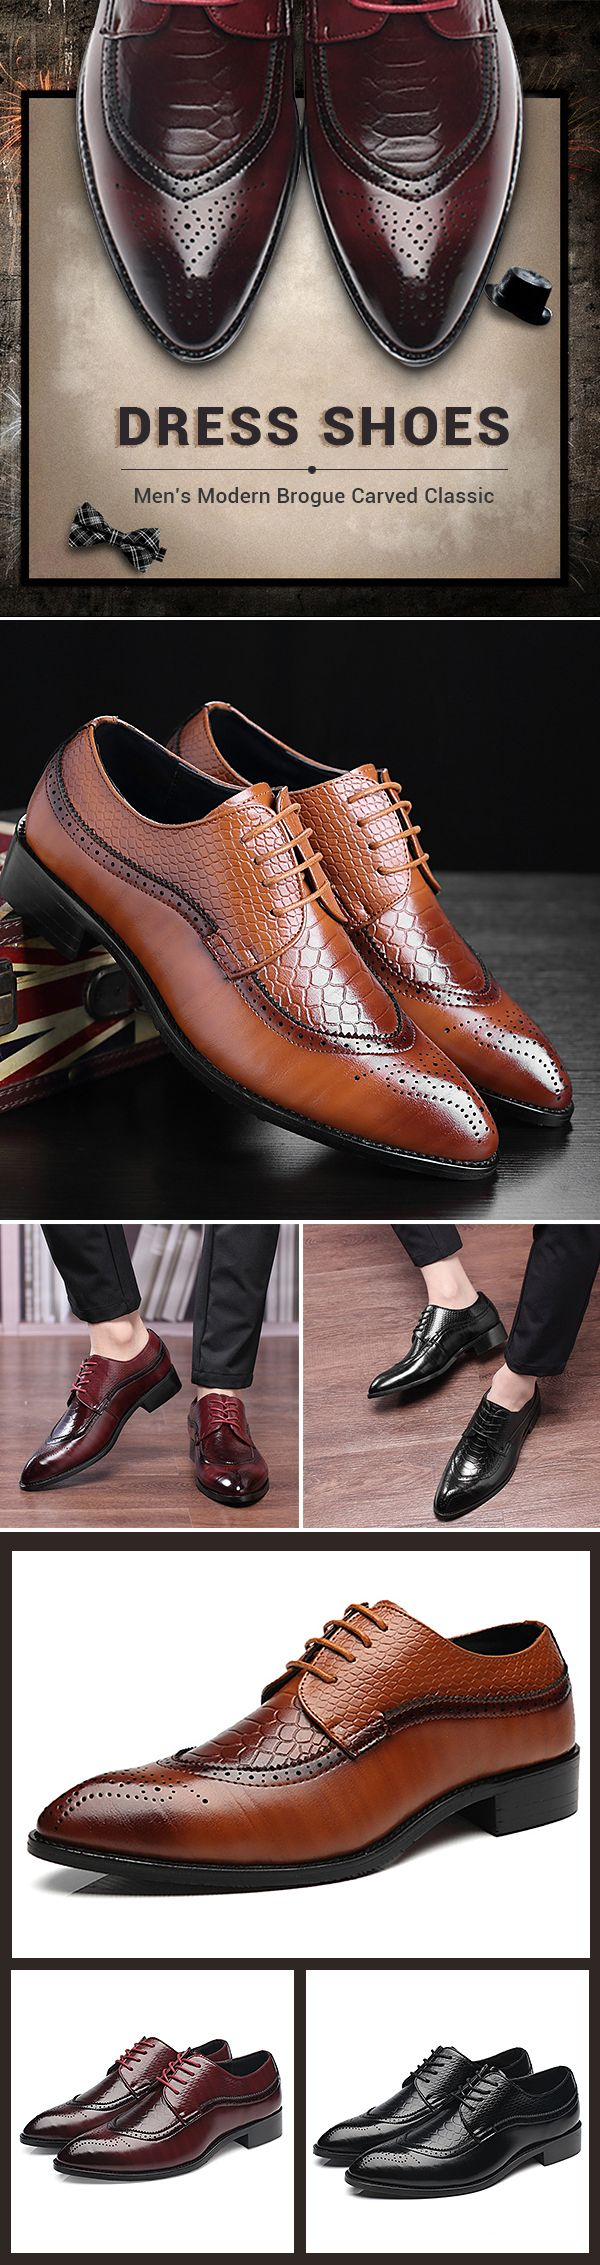 Pointed Toe Dress Shoes